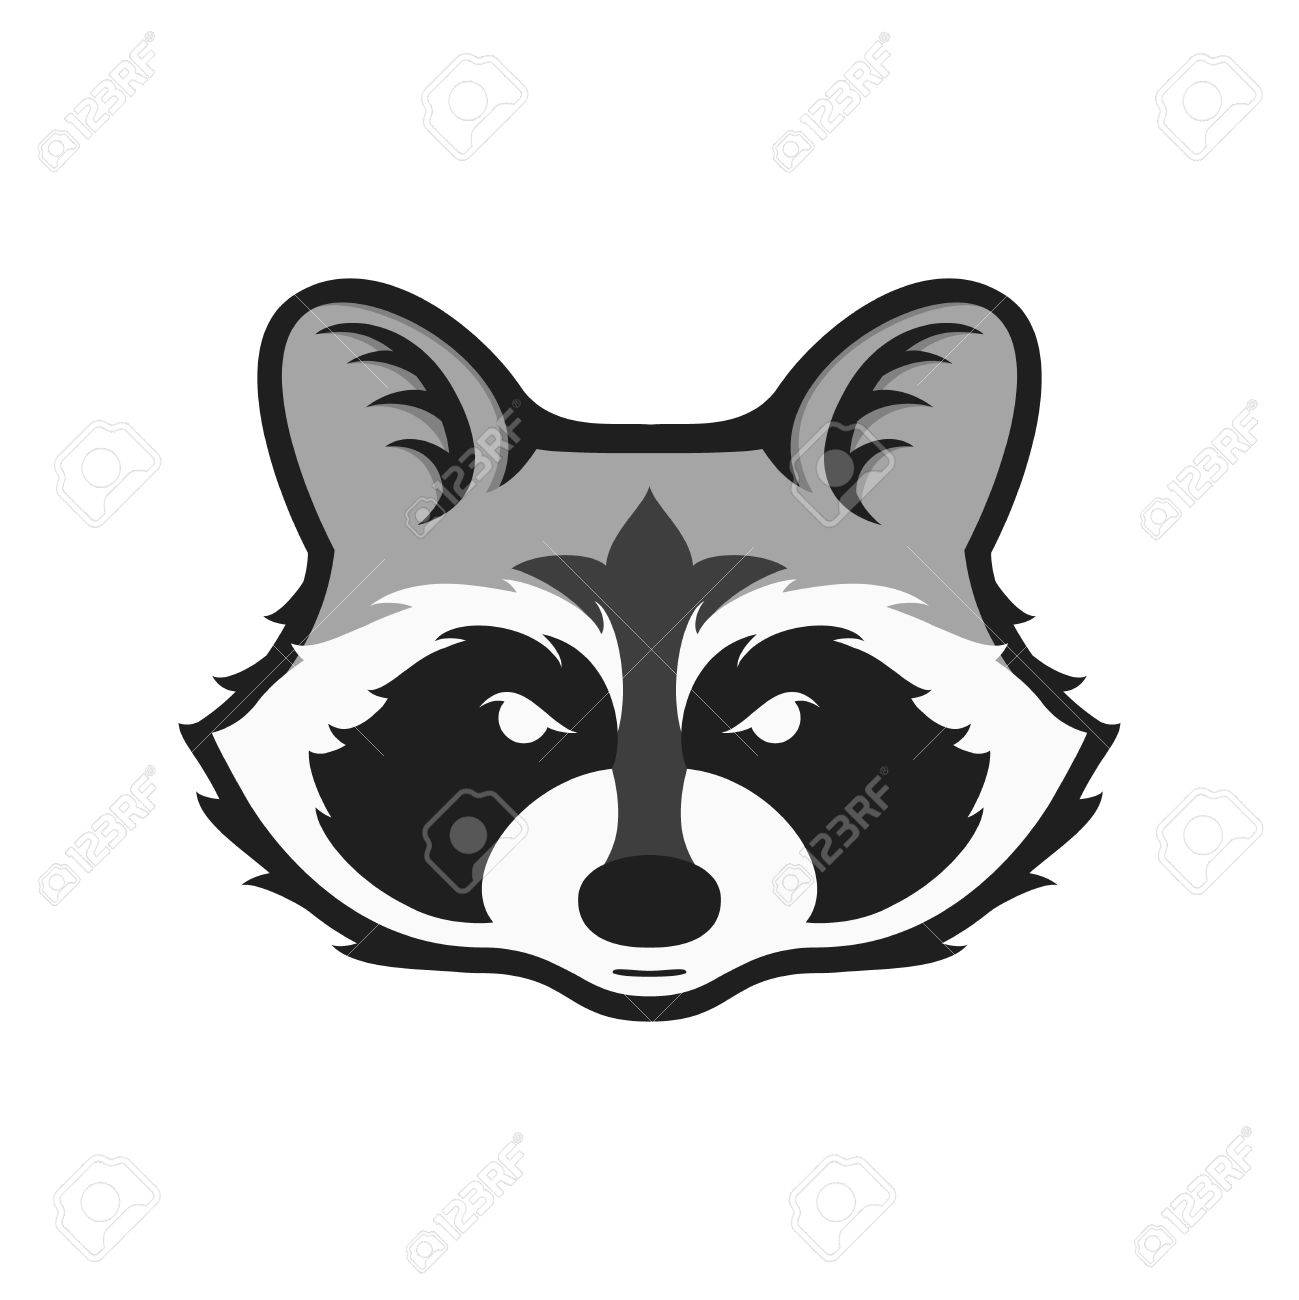 Racoon clipart head. Free drawn download clip